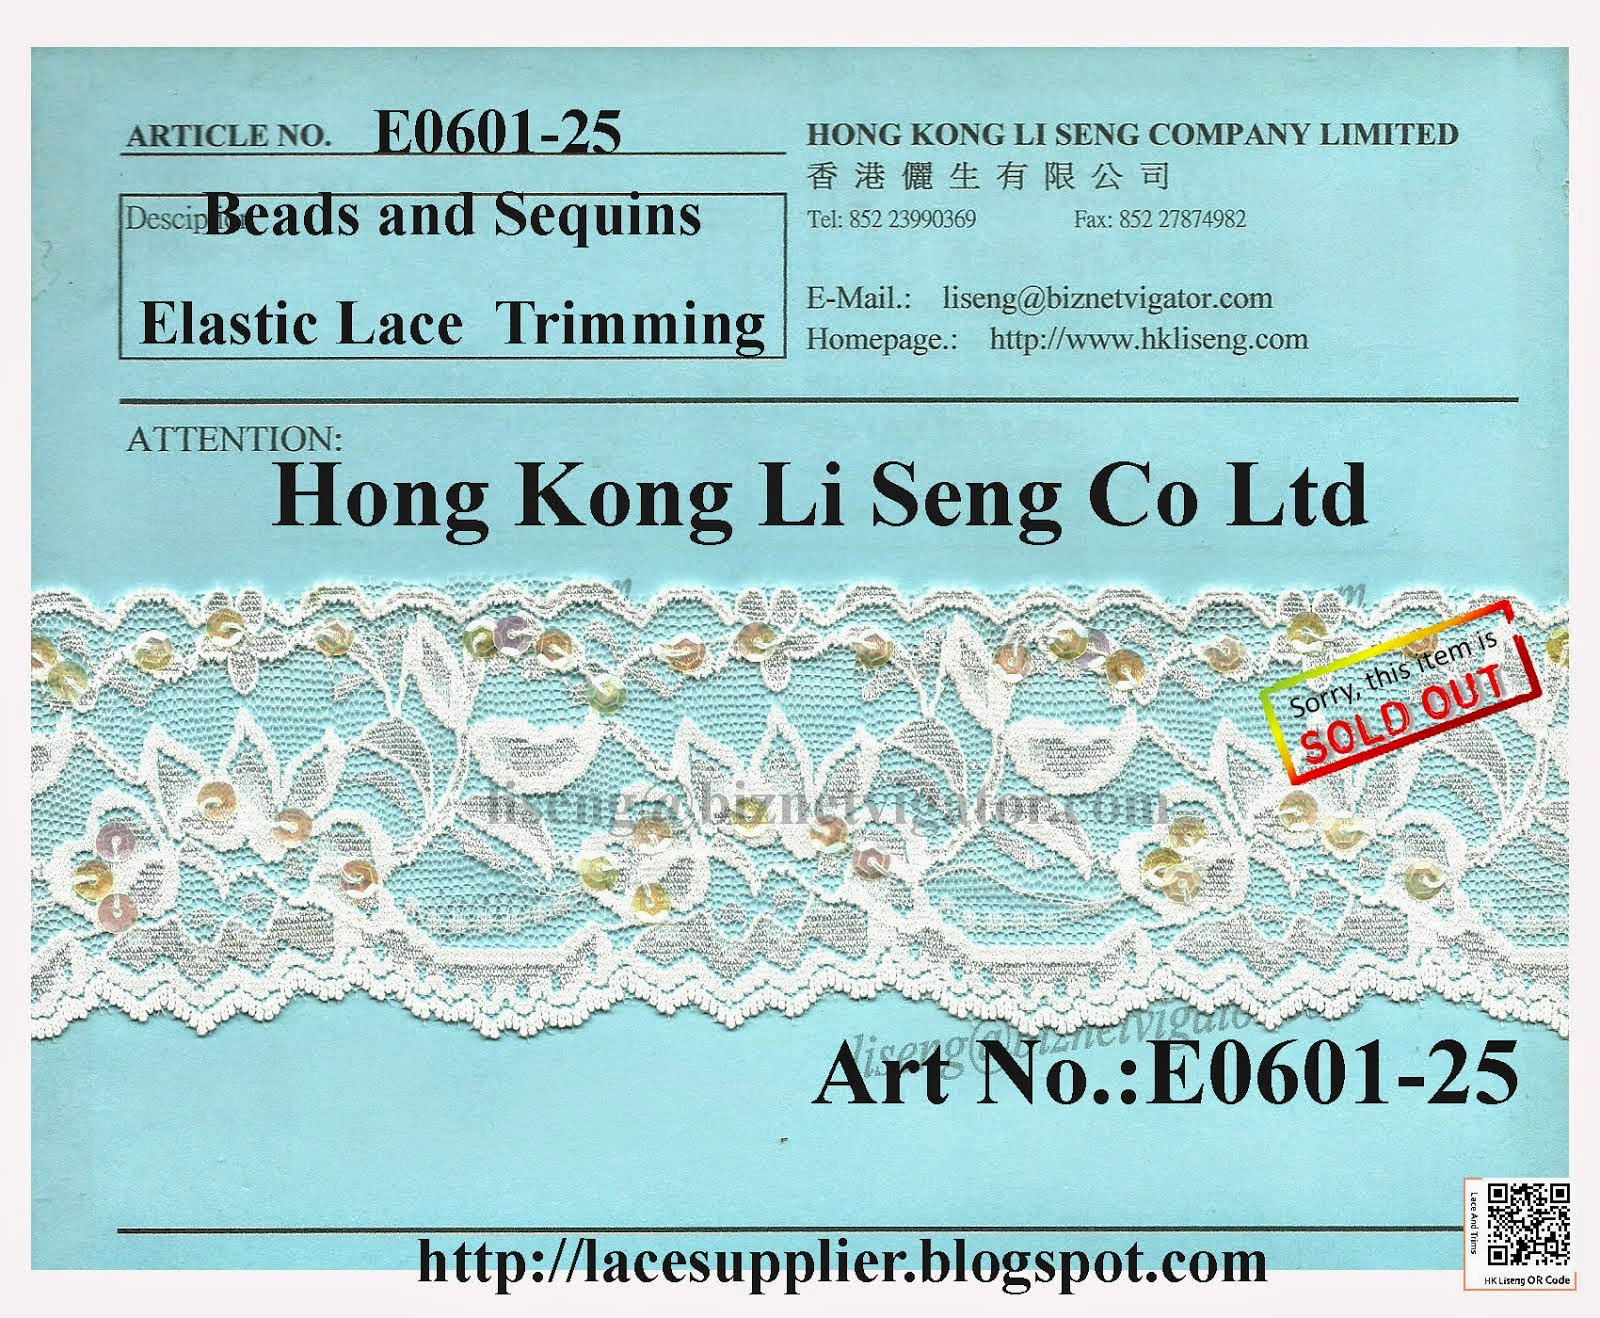 Elastic Lace With Beads and Sequins Manufacturer - Hong Kong Li Seng Co Ltd